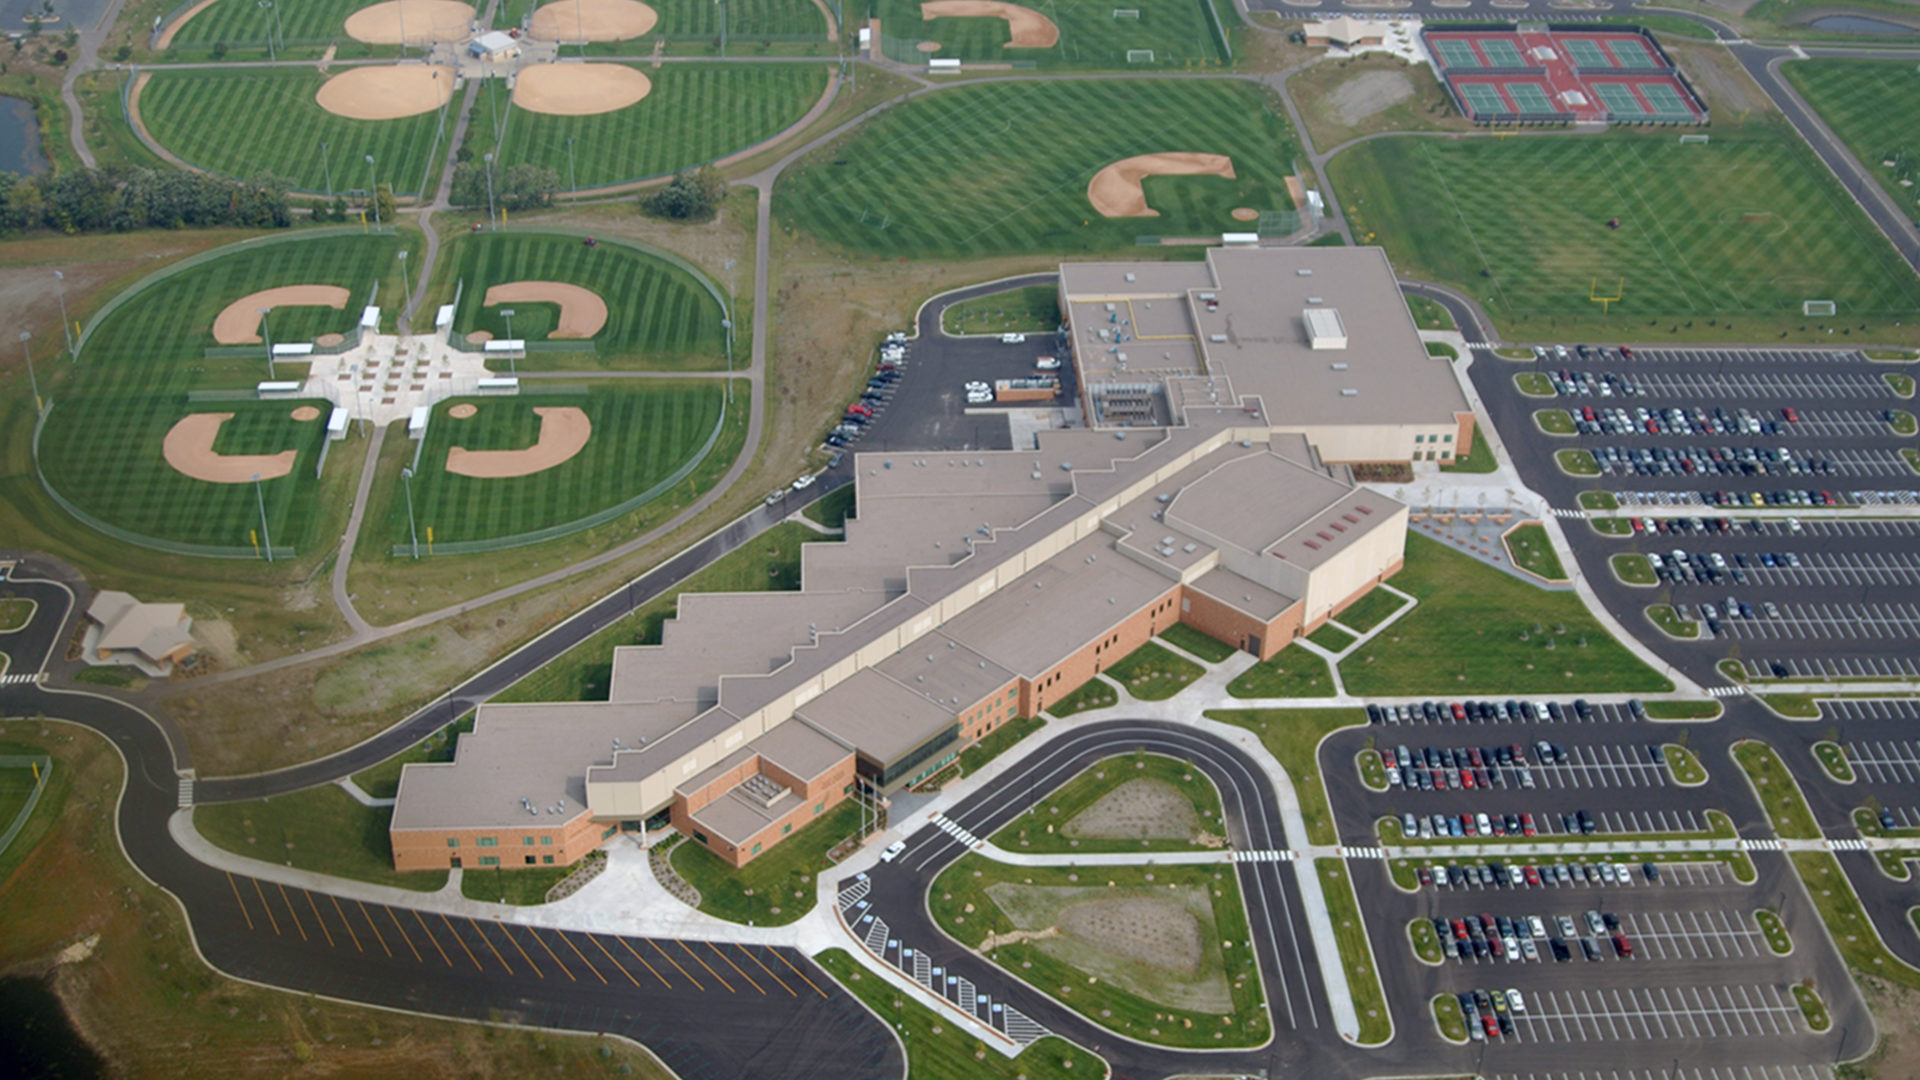 East Ridge High School Campus Aerial View of Building and Sports Fields